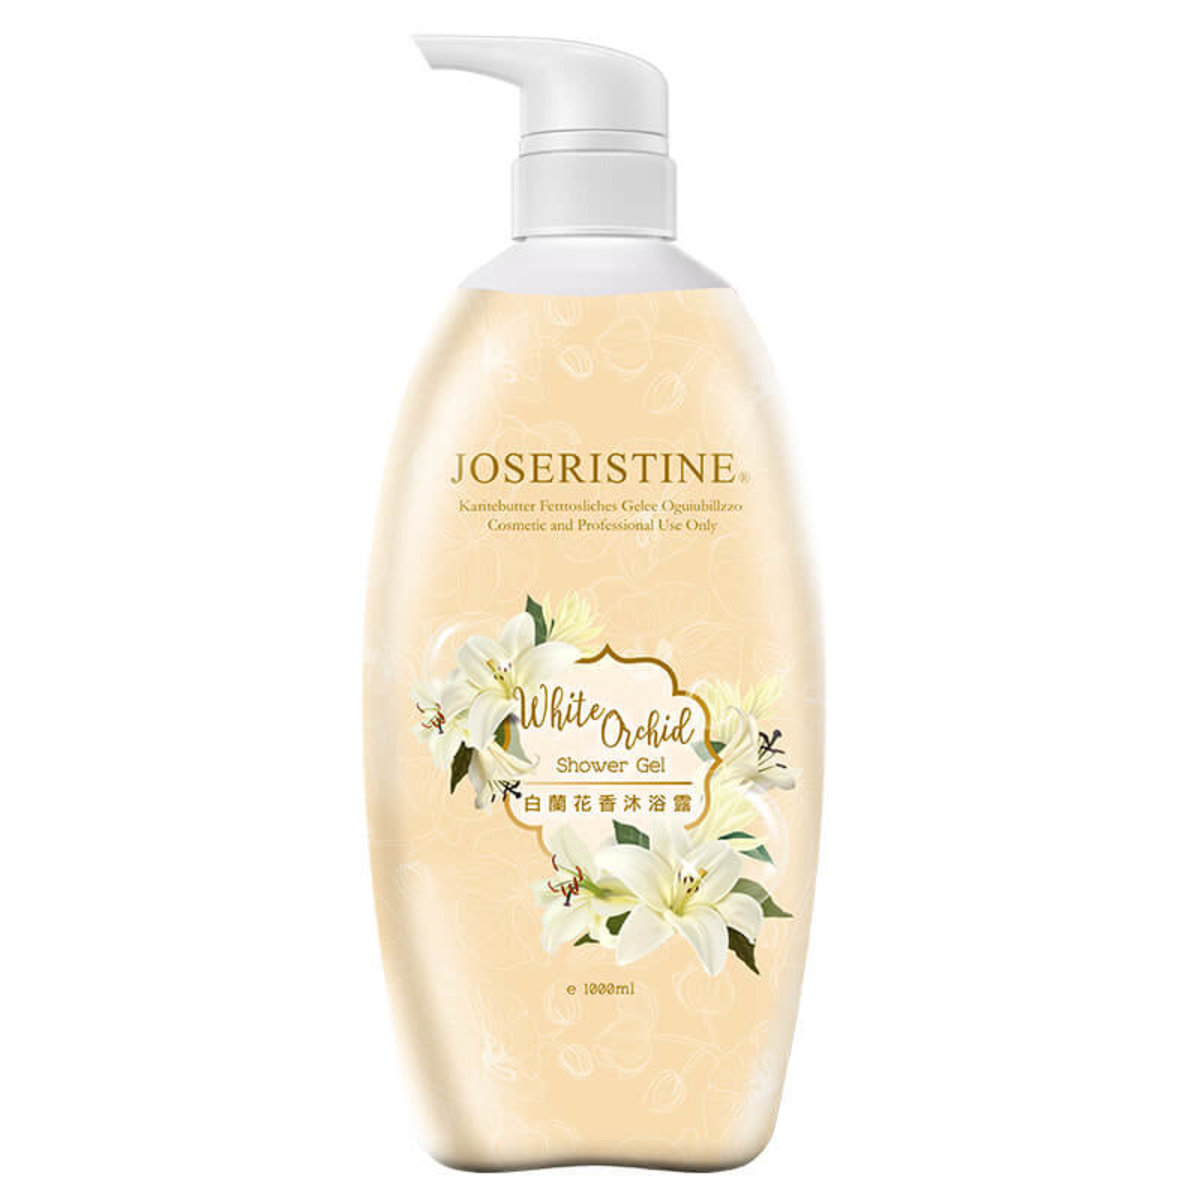 White Orchid Shower Gel